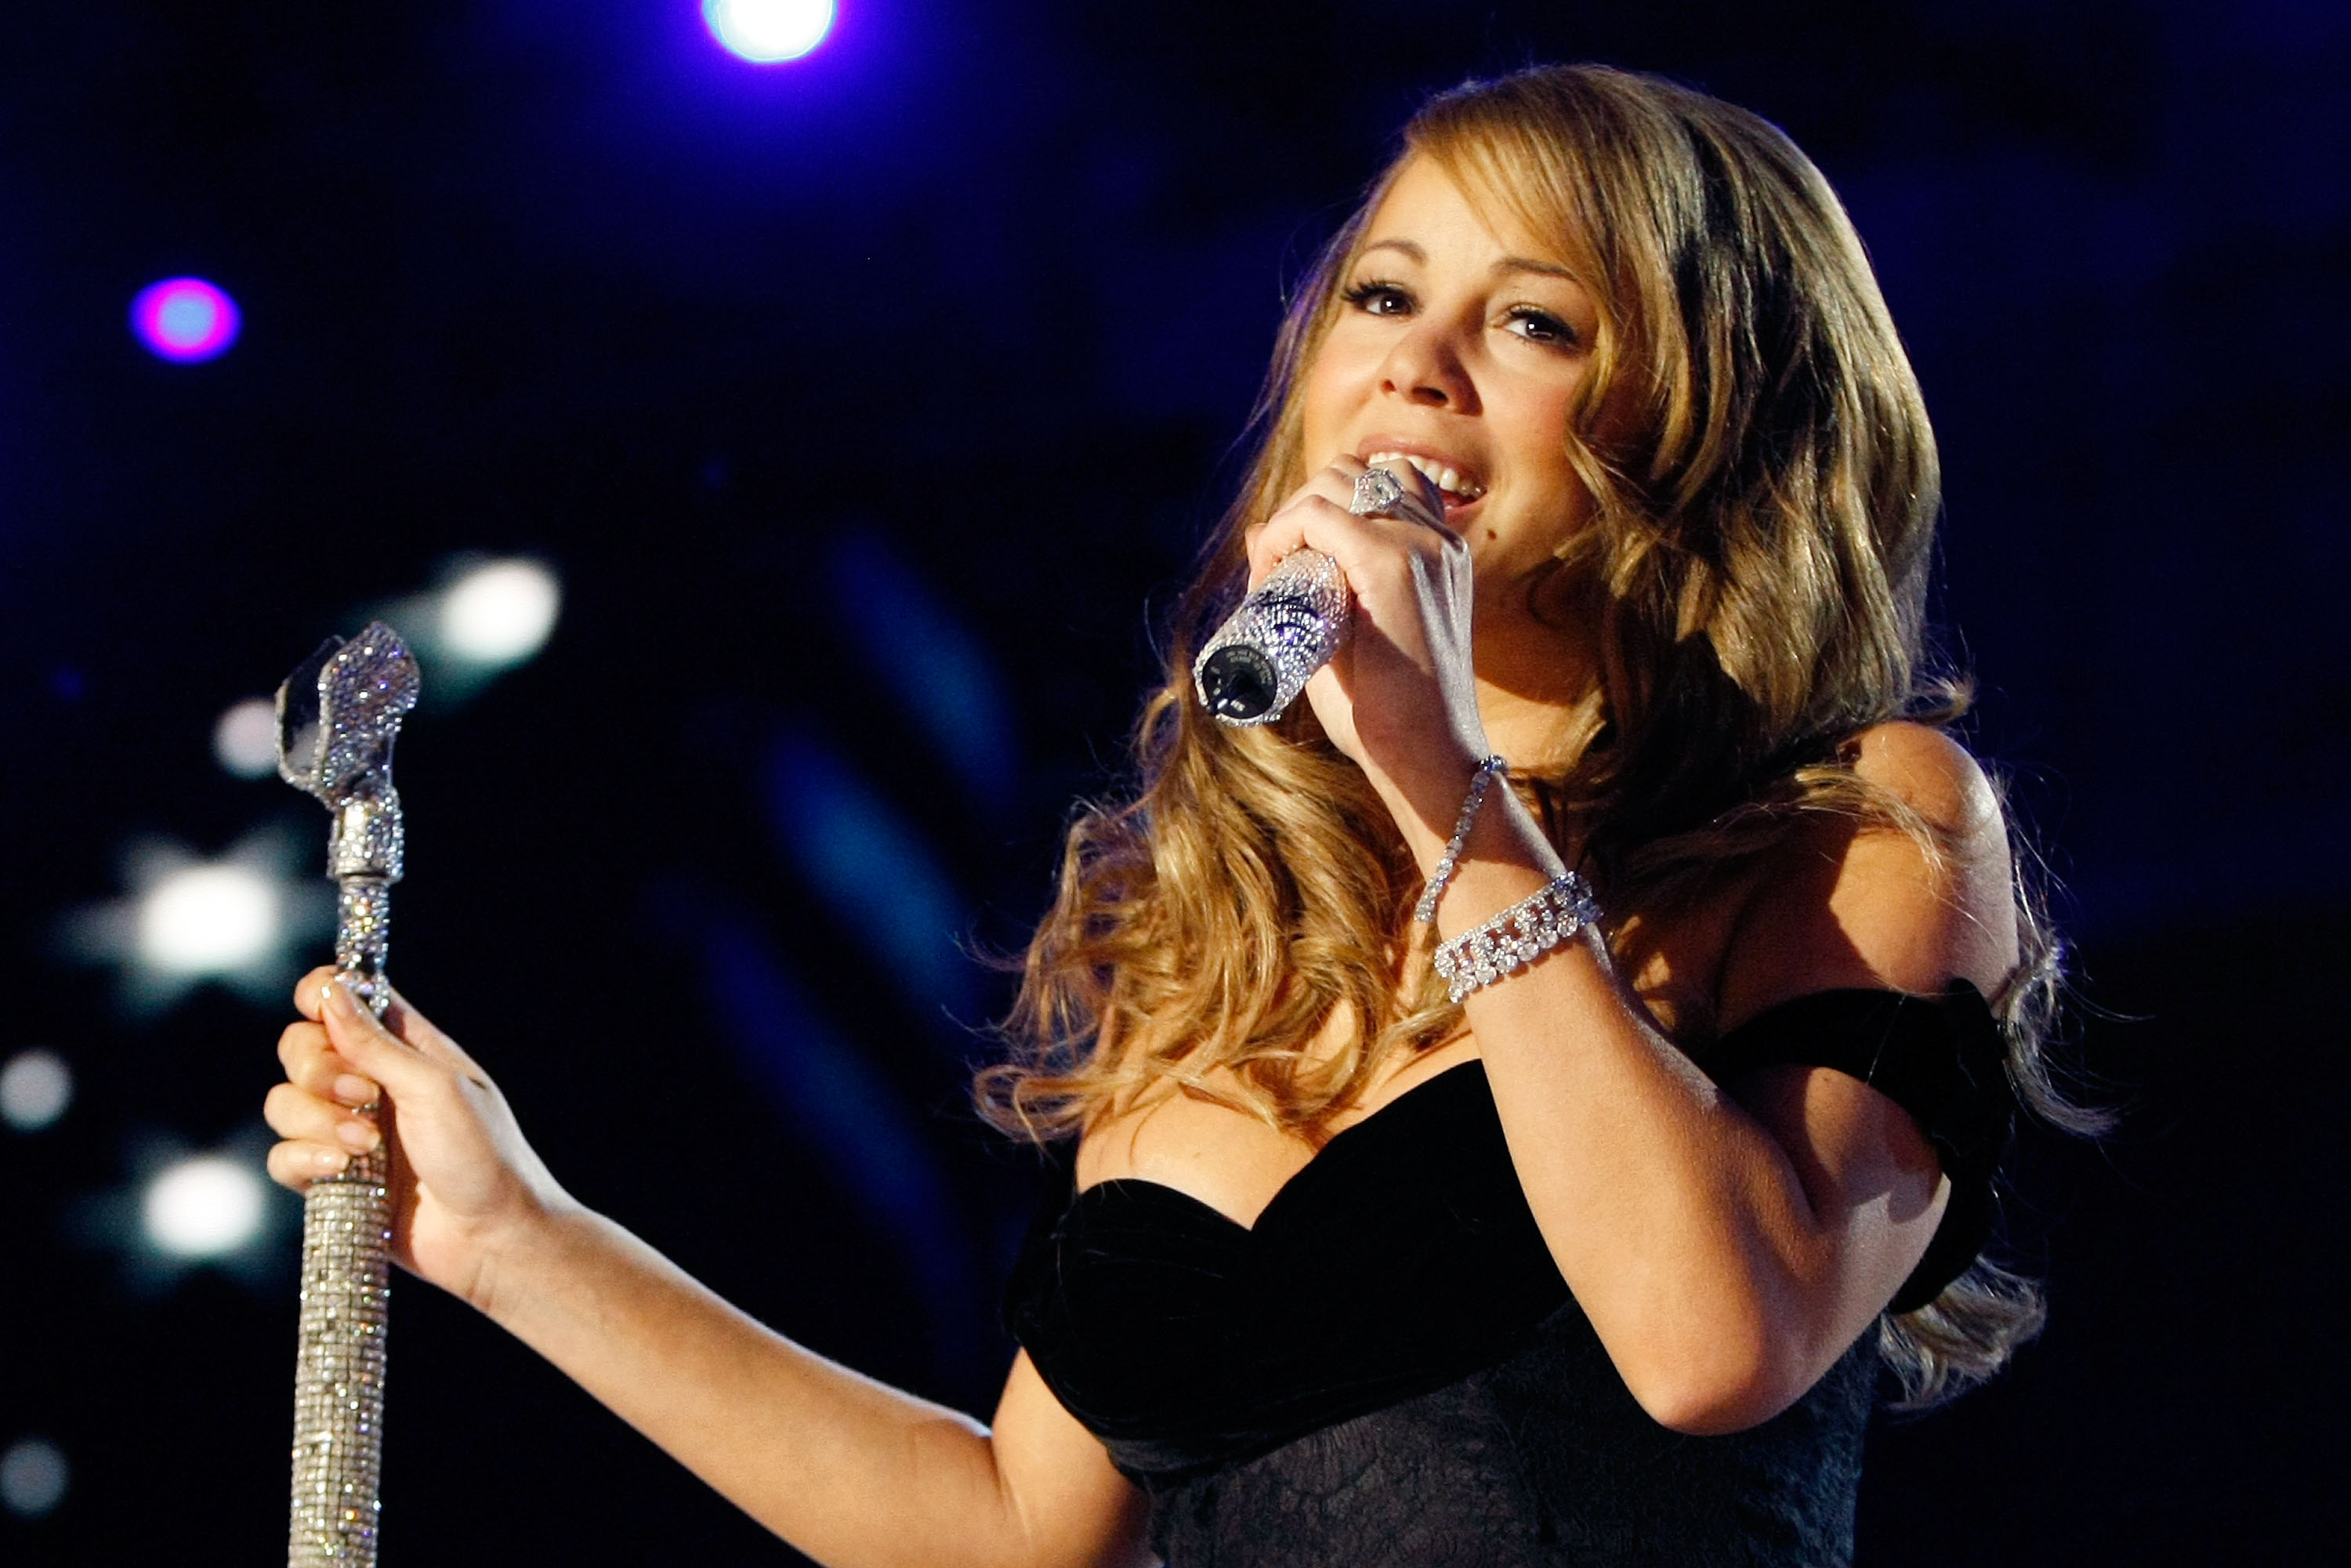 Mariah Carey cancels Brussels concert over safety fears following terror attacks